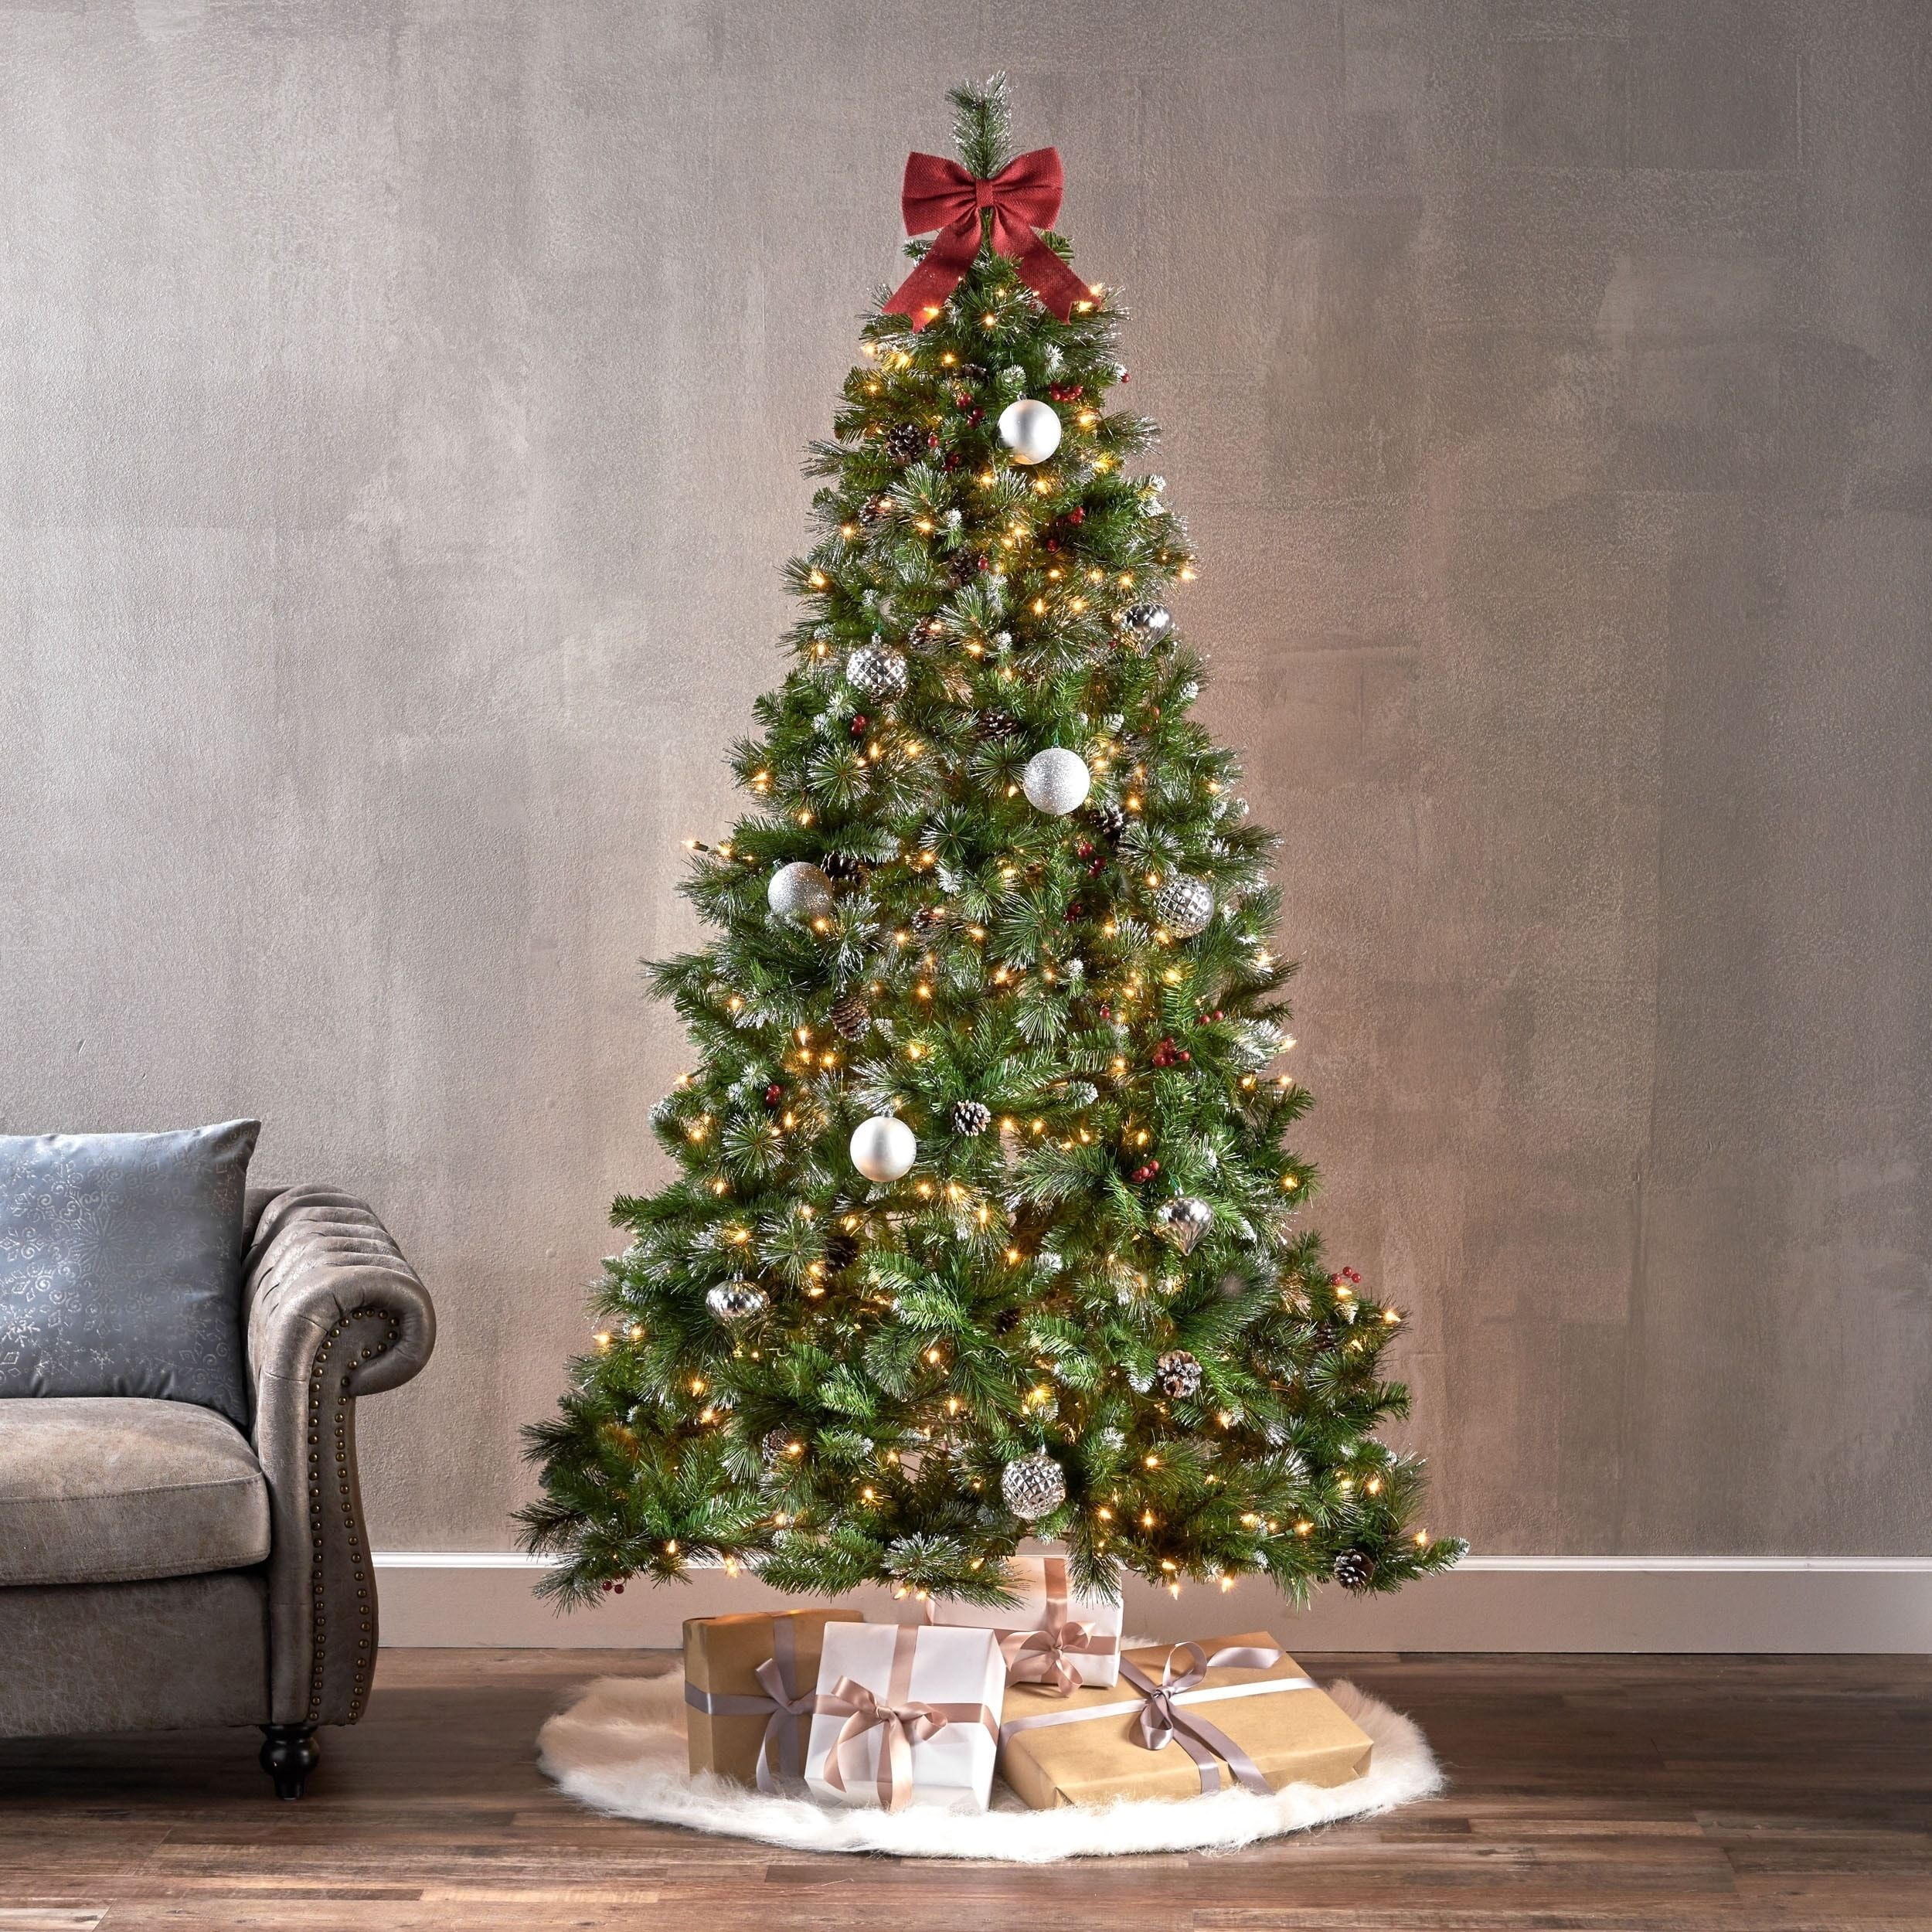 Overstock Com Online Shopping Bedding Furniture Electronics Jewelry Clothing More Green Christmas Tree Classic Christmas Tree Traditional Christmas Decorations